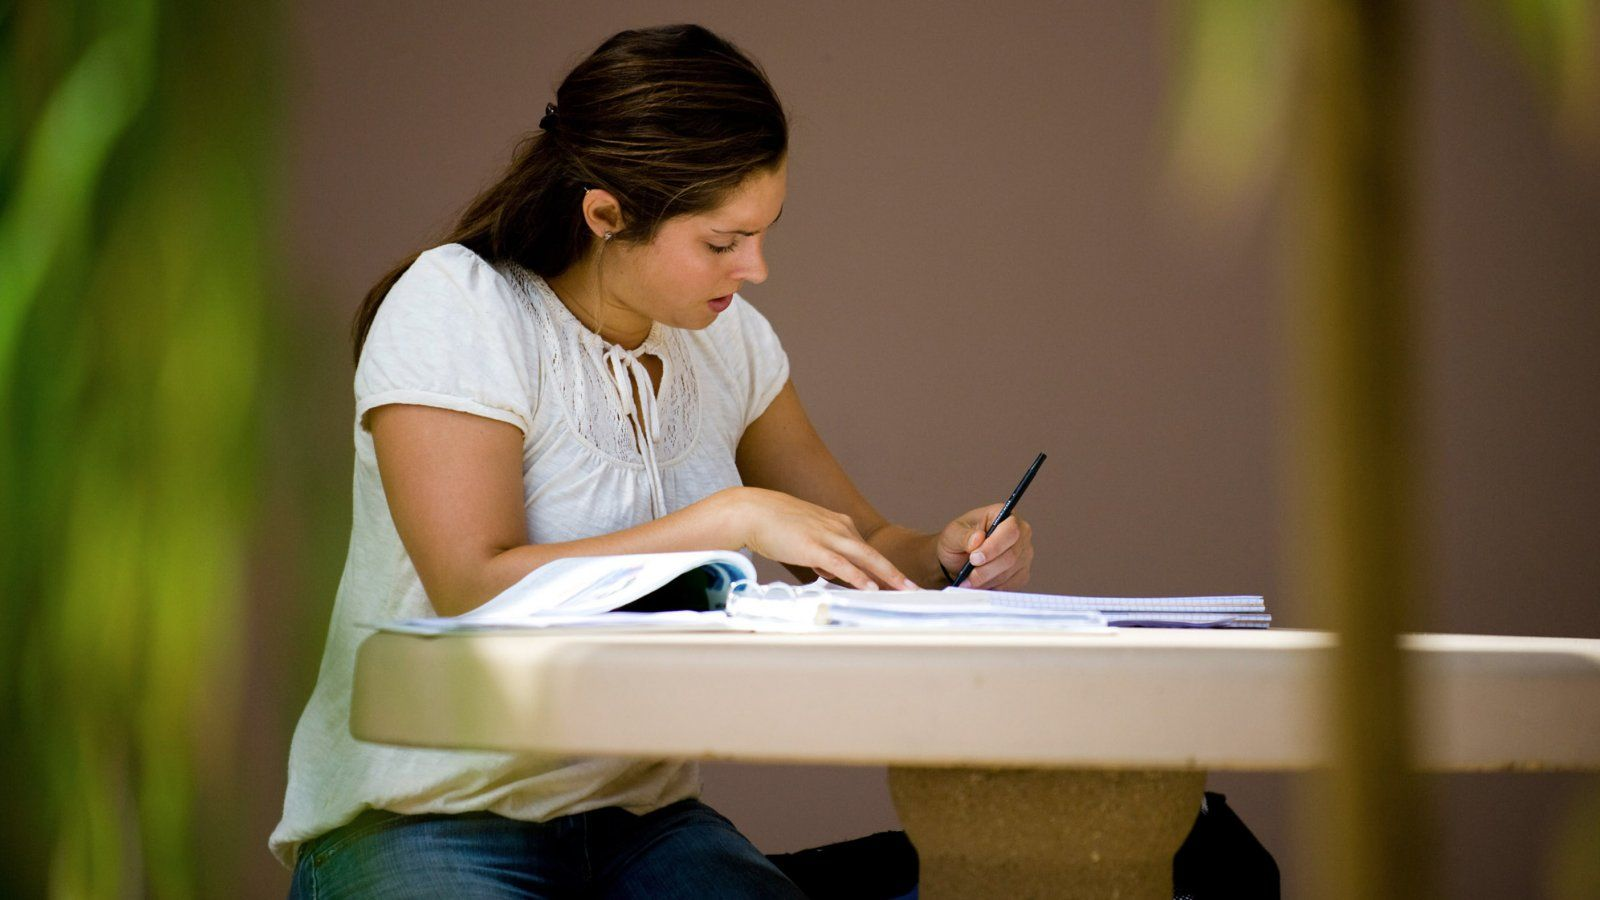 A student works on an assignment outside.